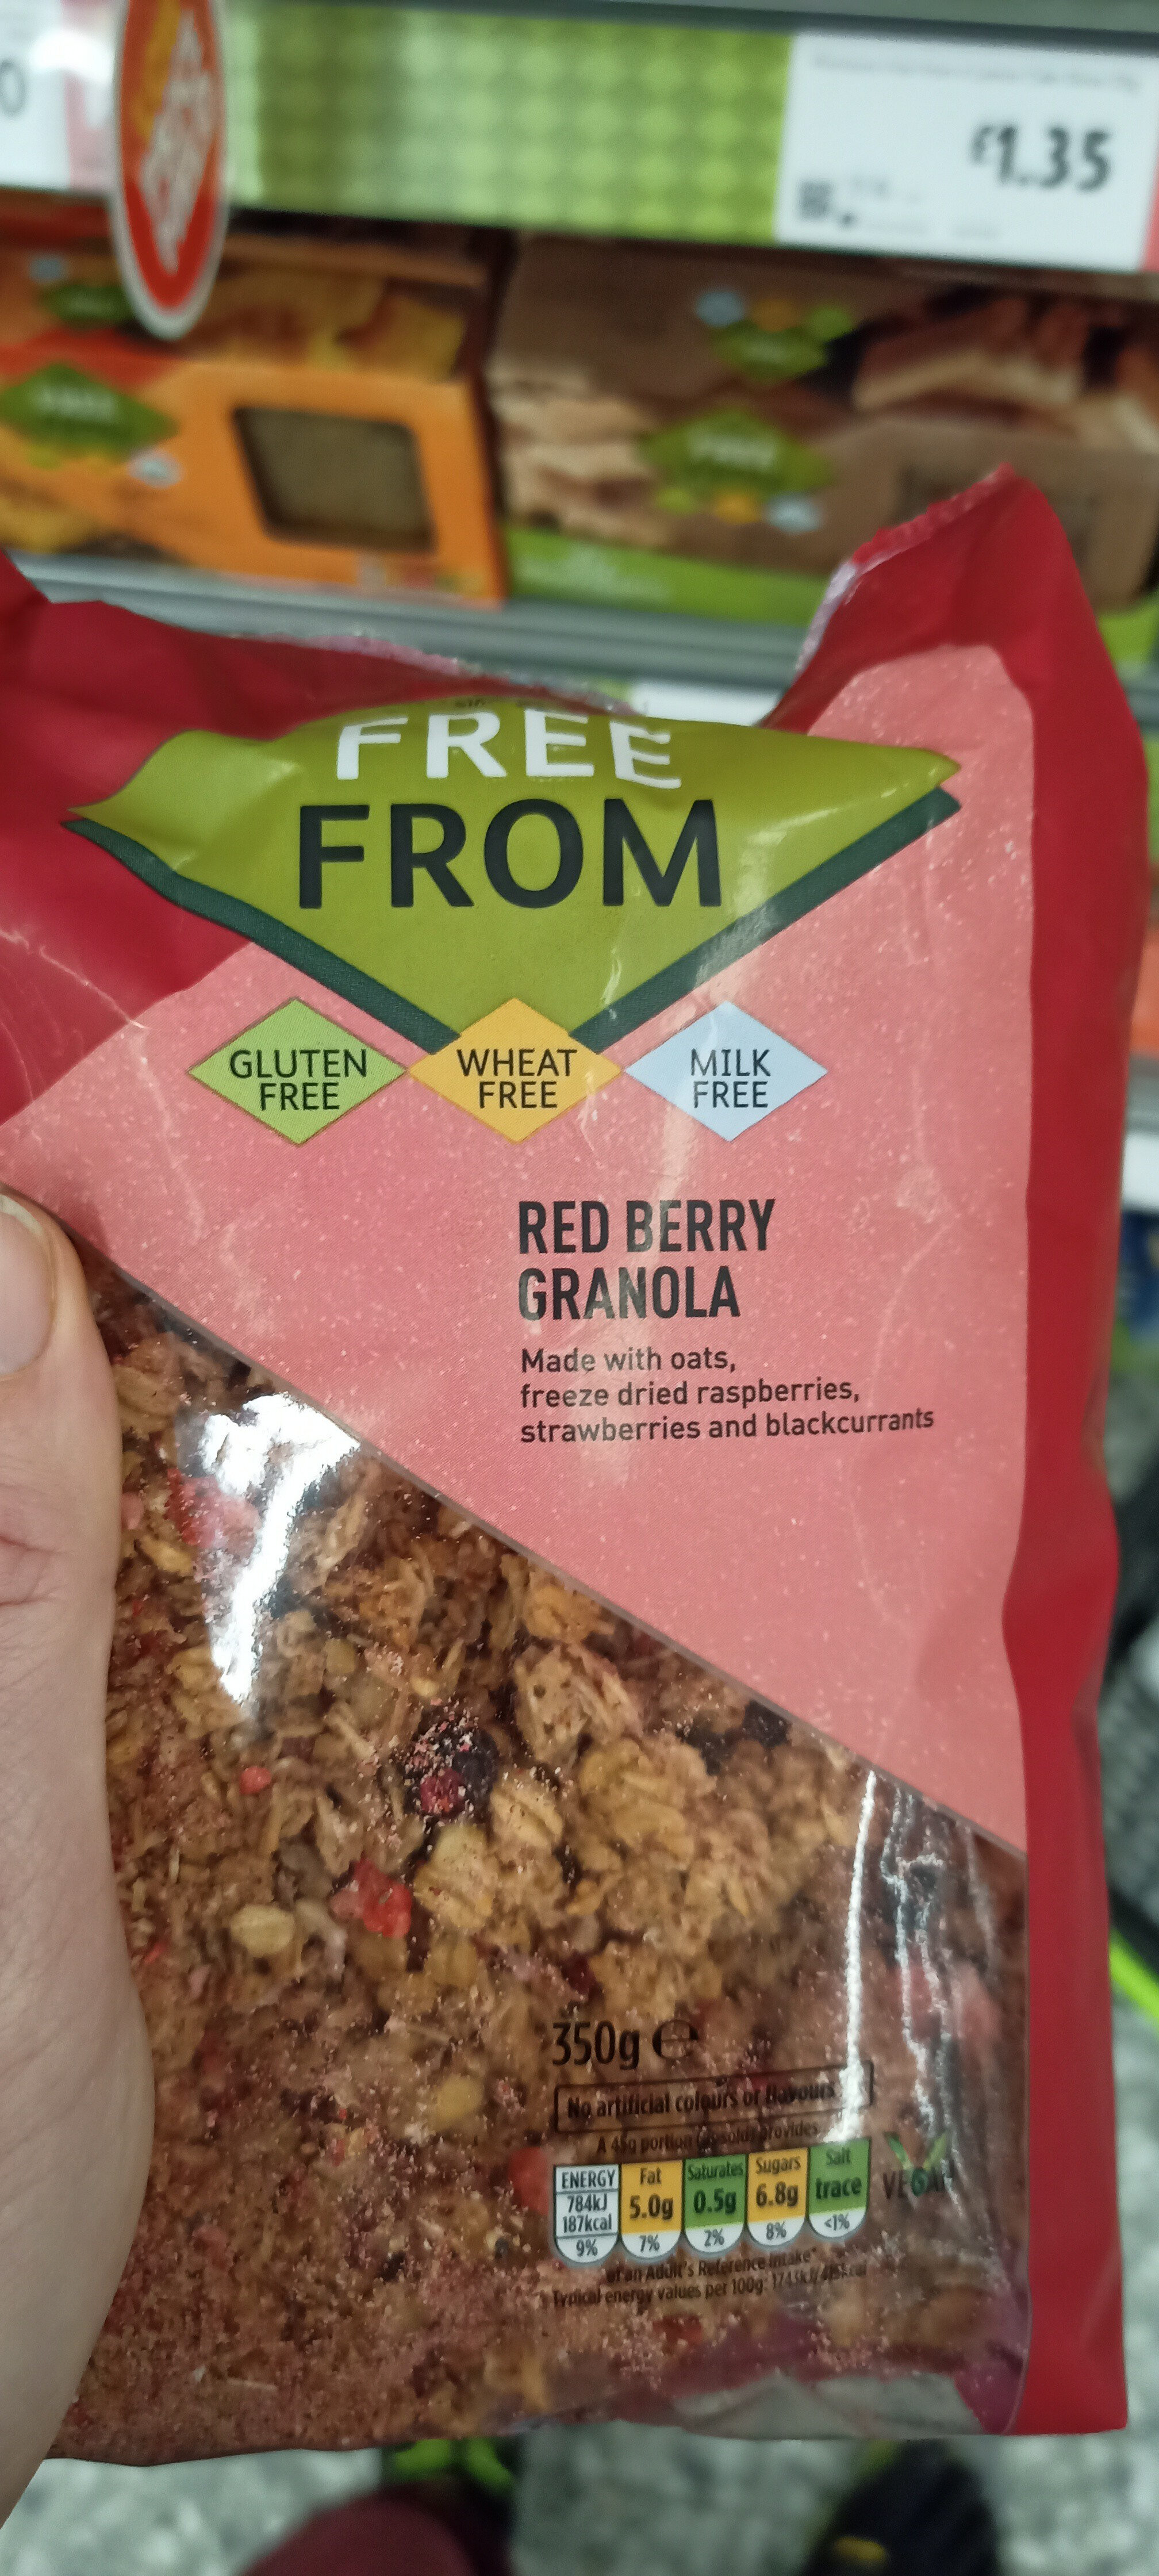 red berry granola - Product - en